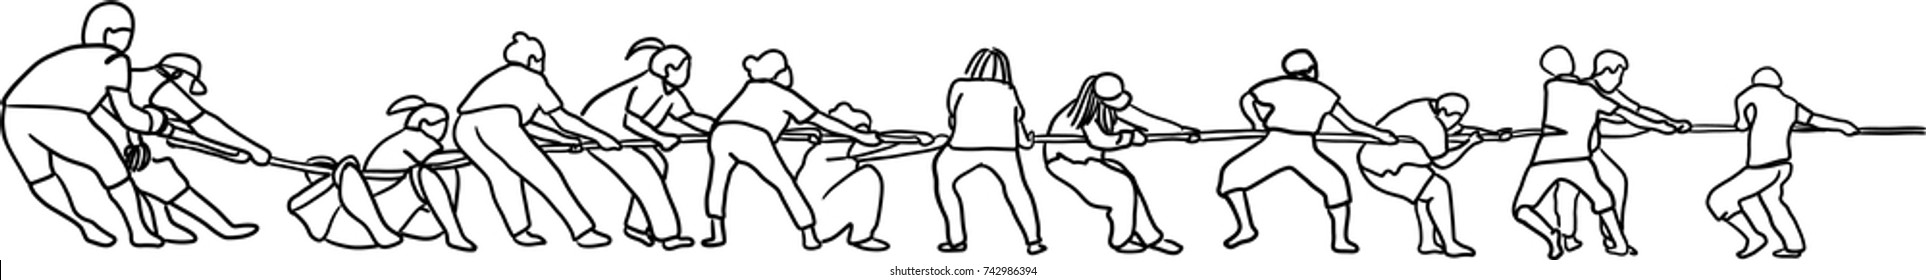 Vector art drawing of People In Tug Of War, partnership concept